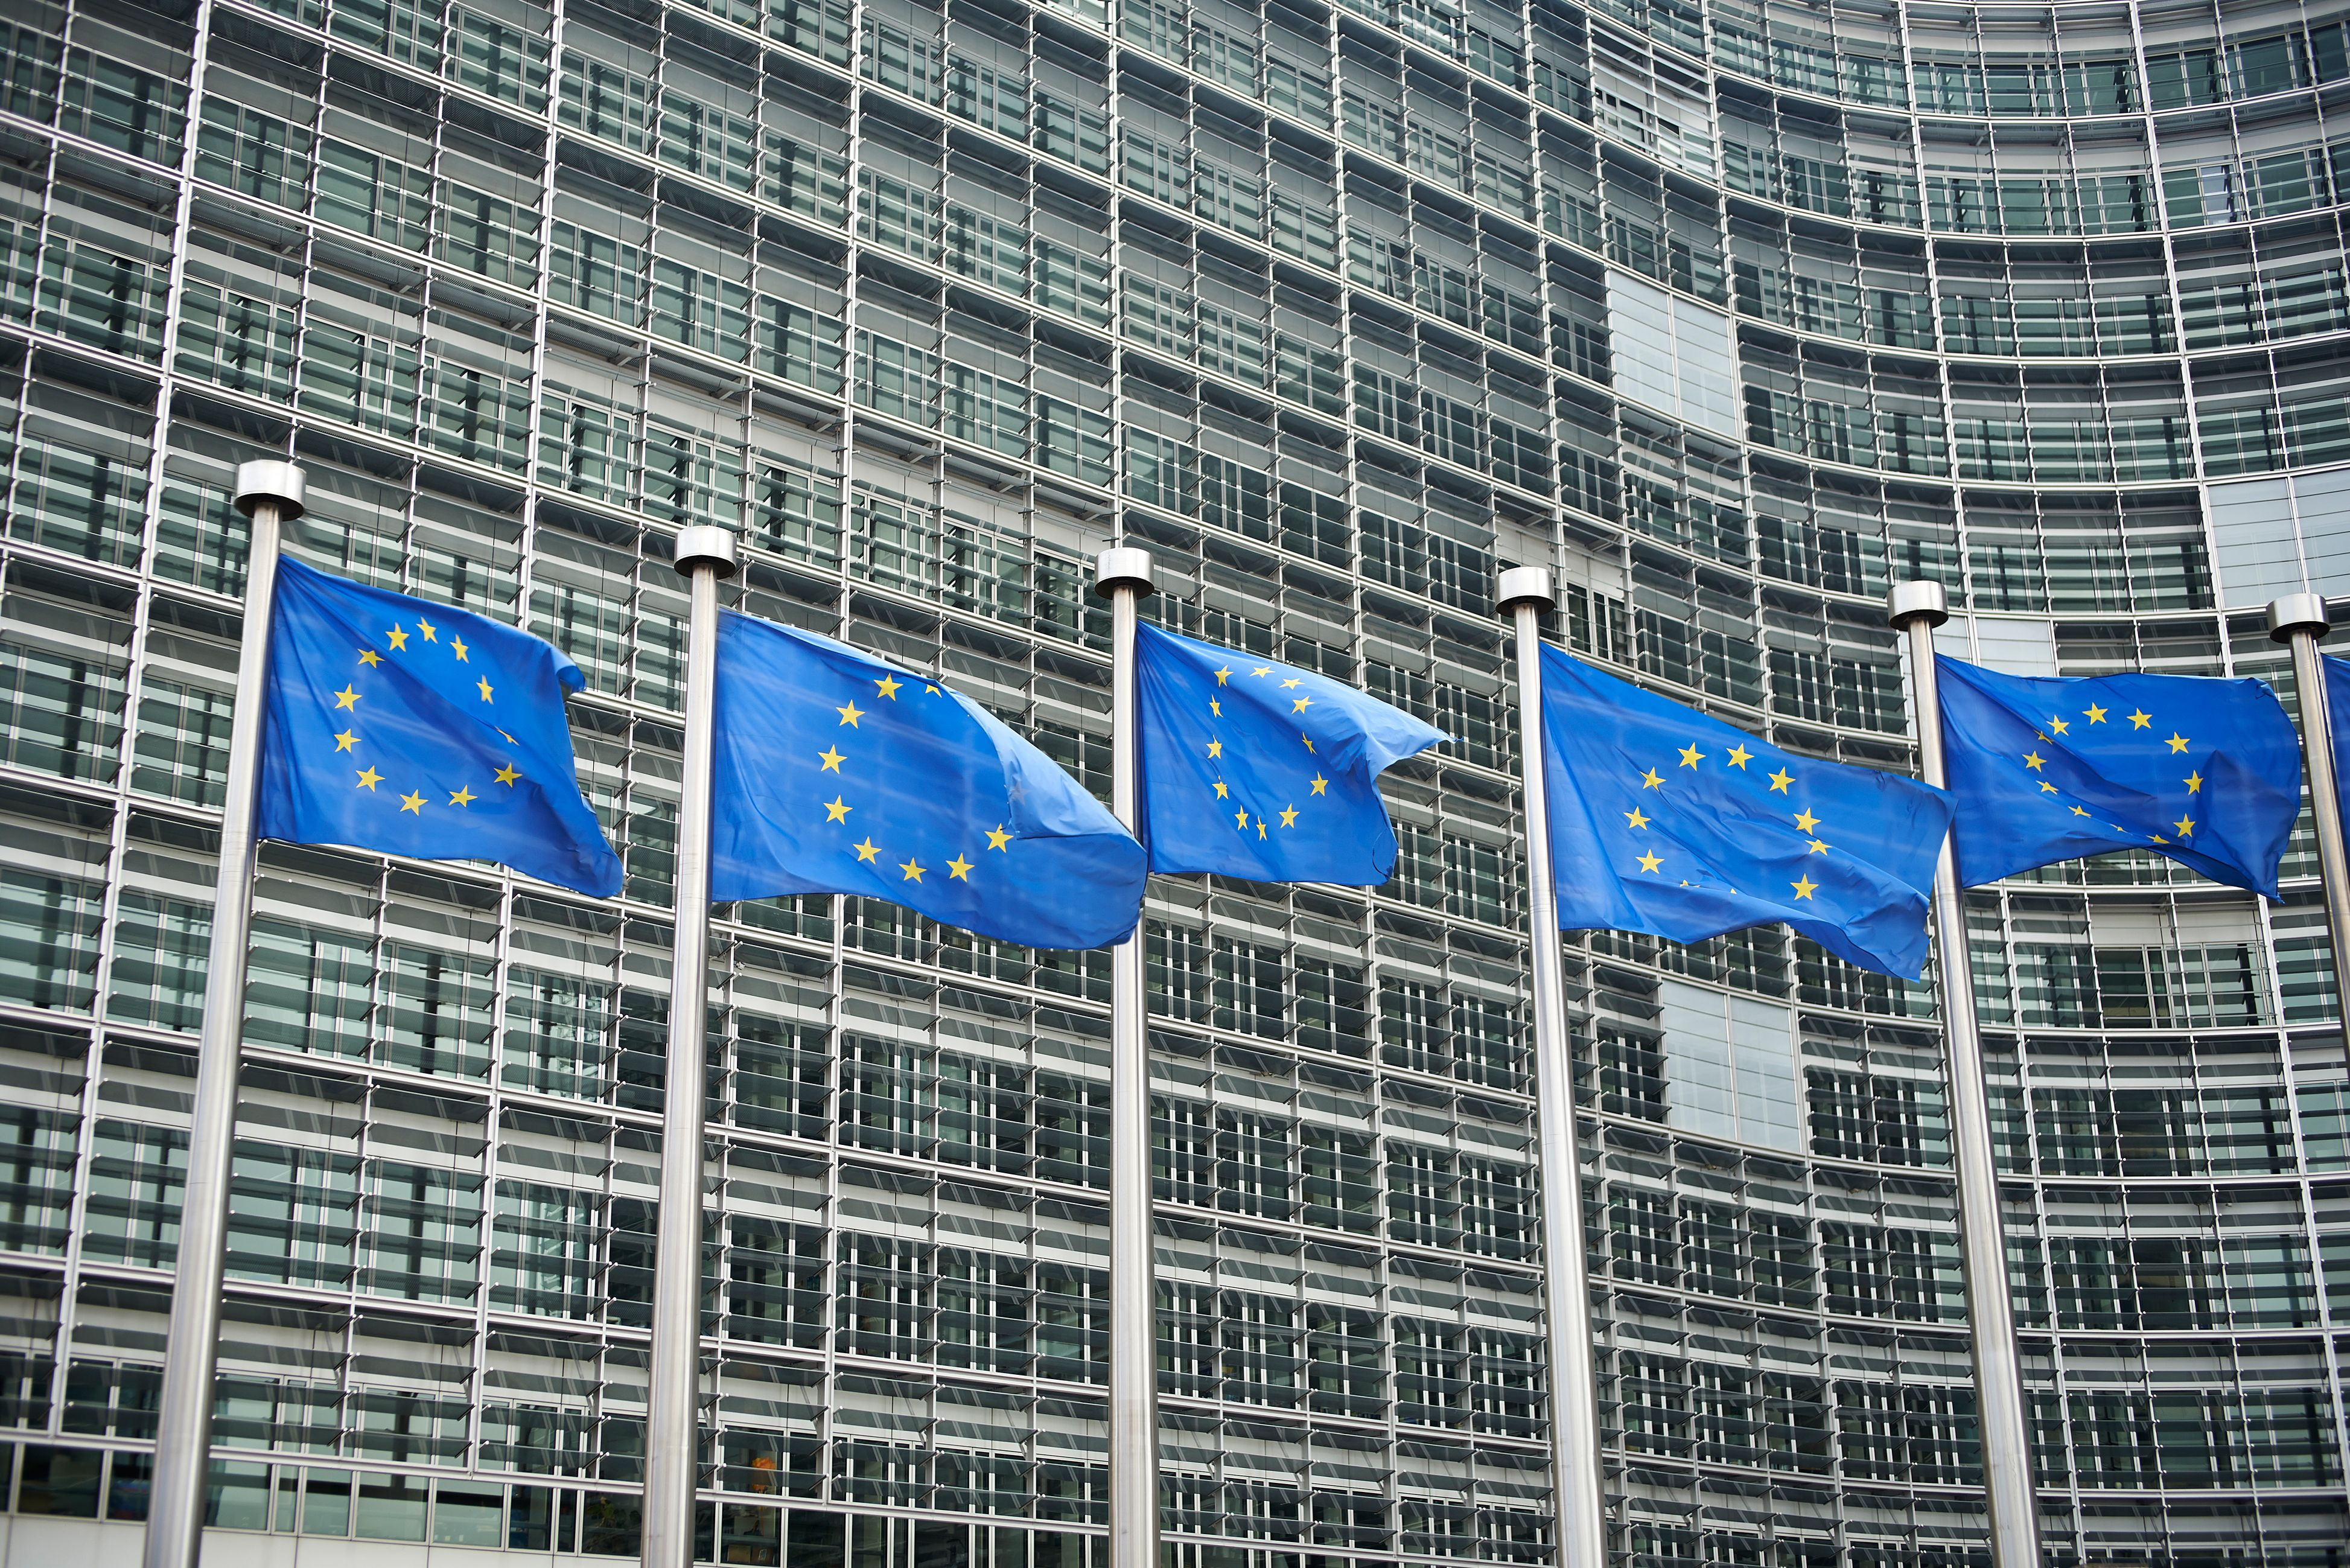 European Council adopts conclusions on MFF and NGEU